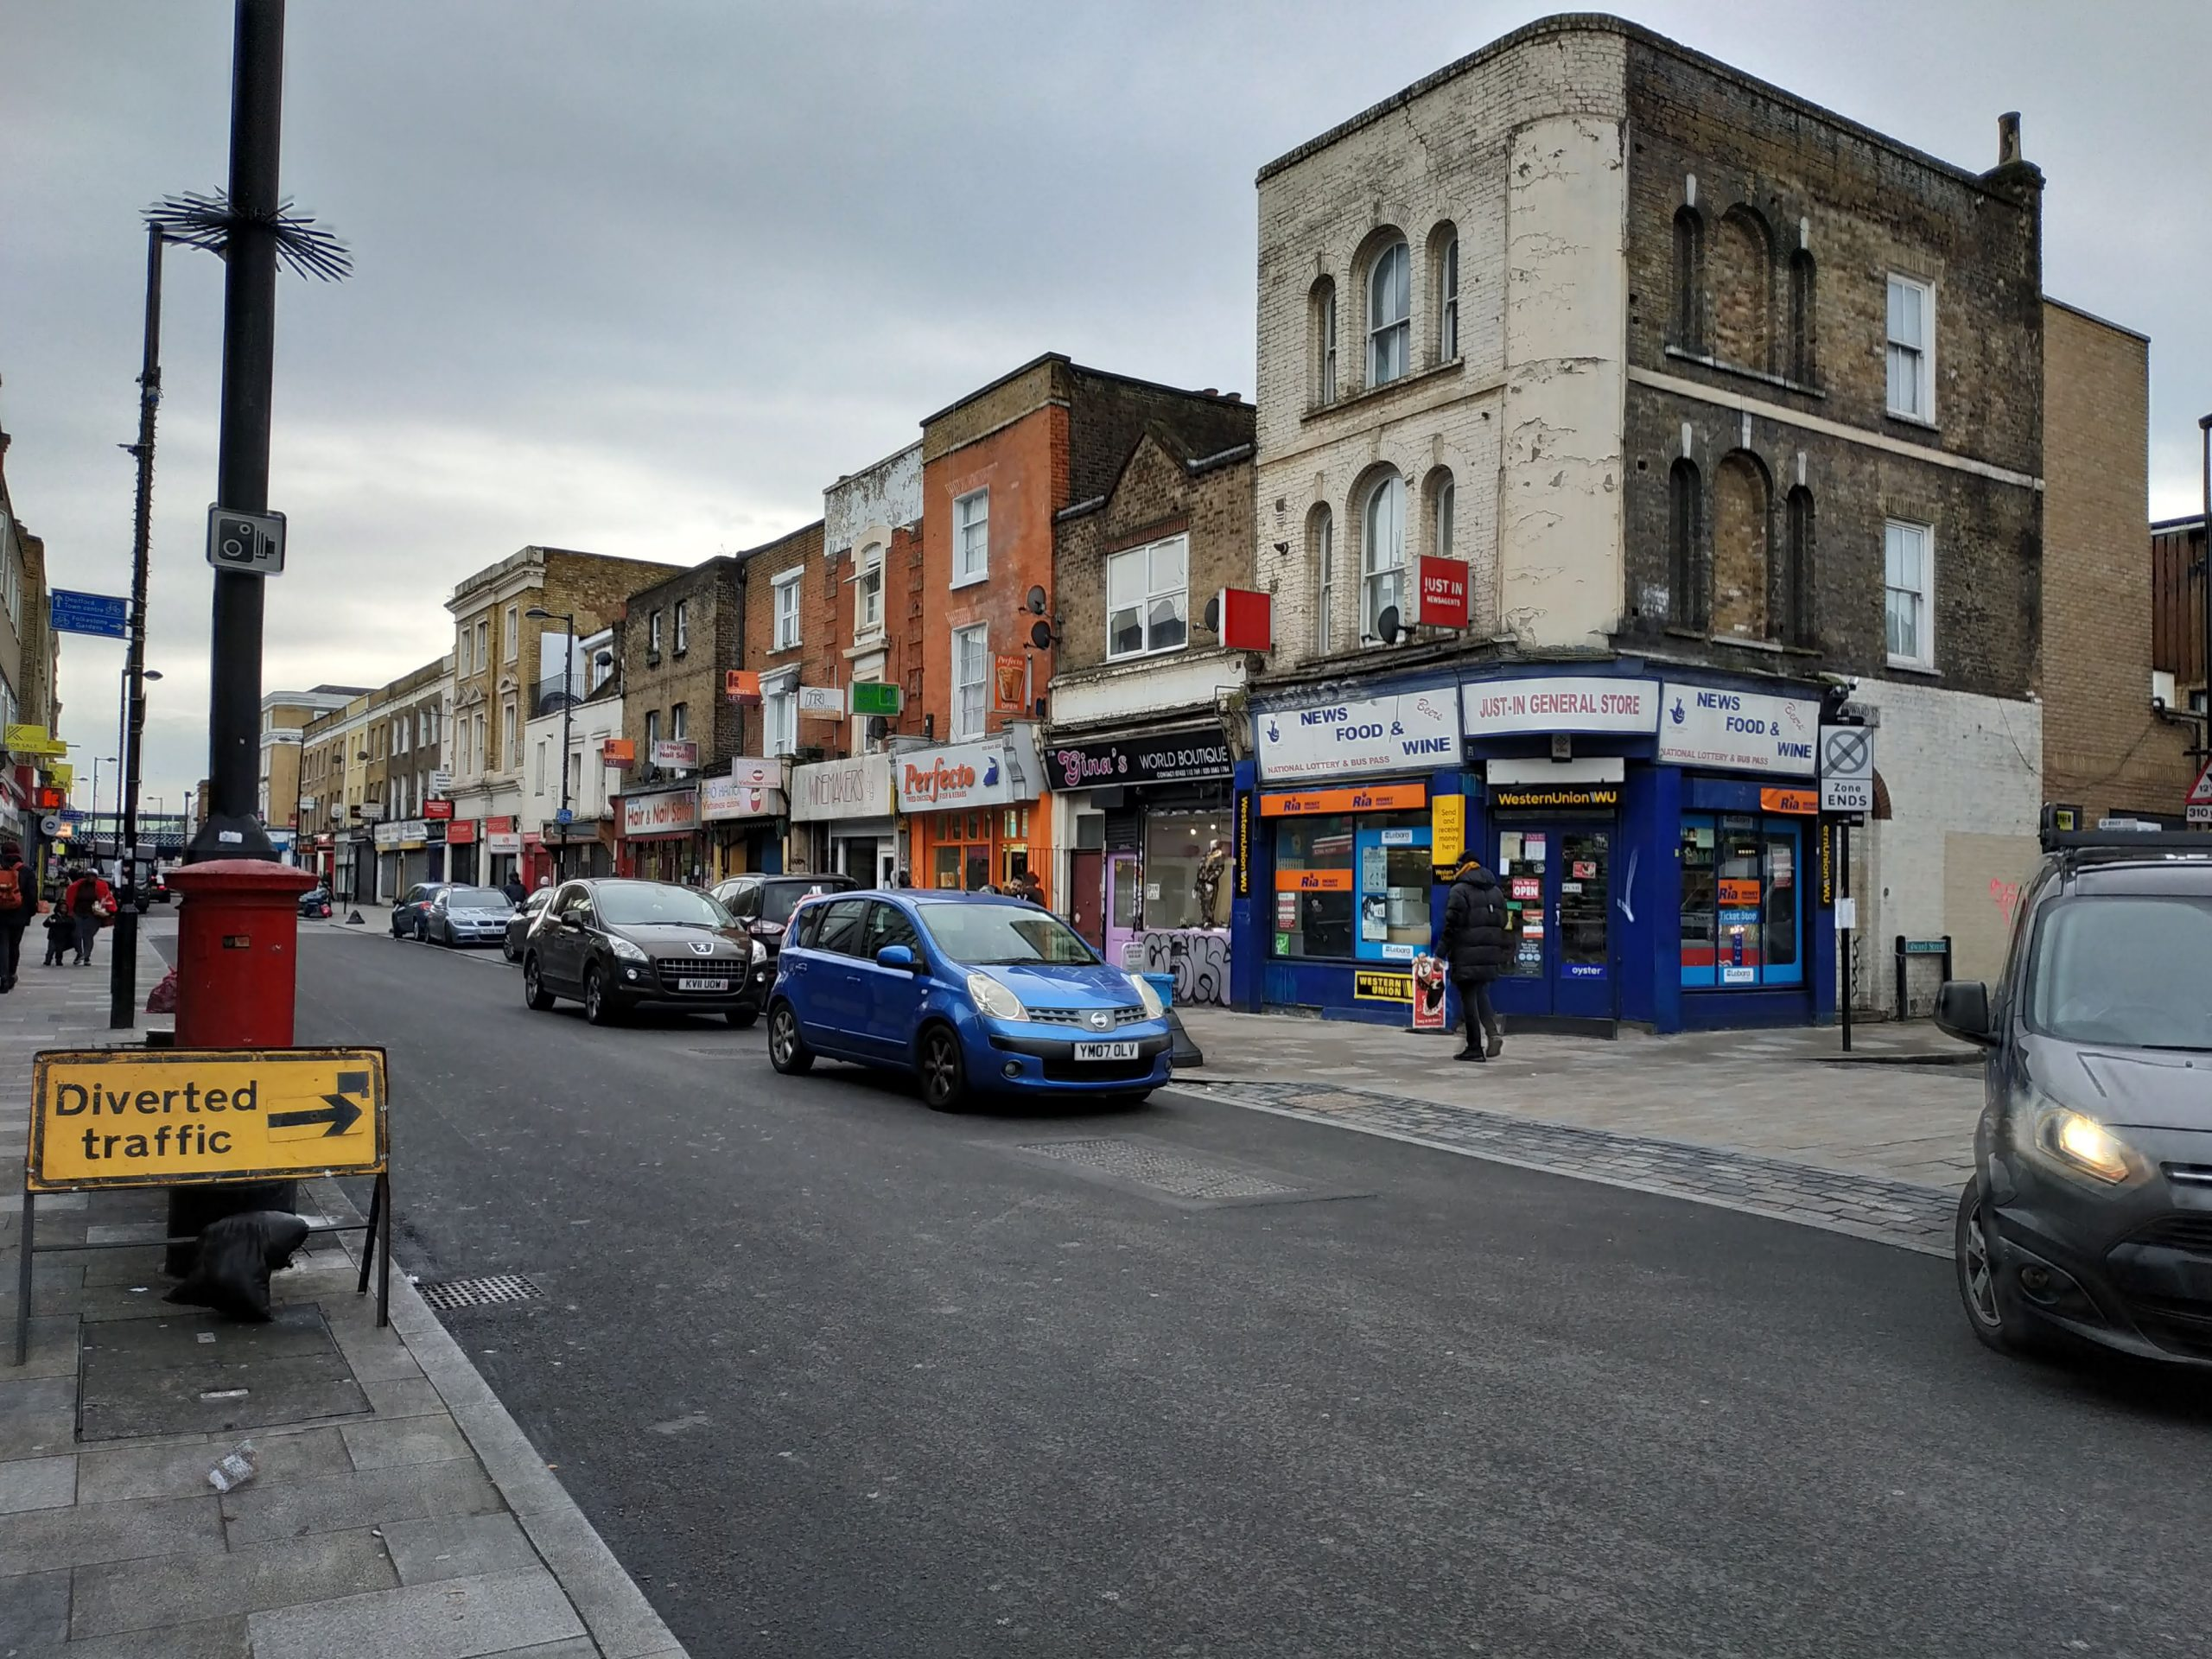 """Channel 4 to make show on """"flipping"""" homes for quick profits in Deptford"""